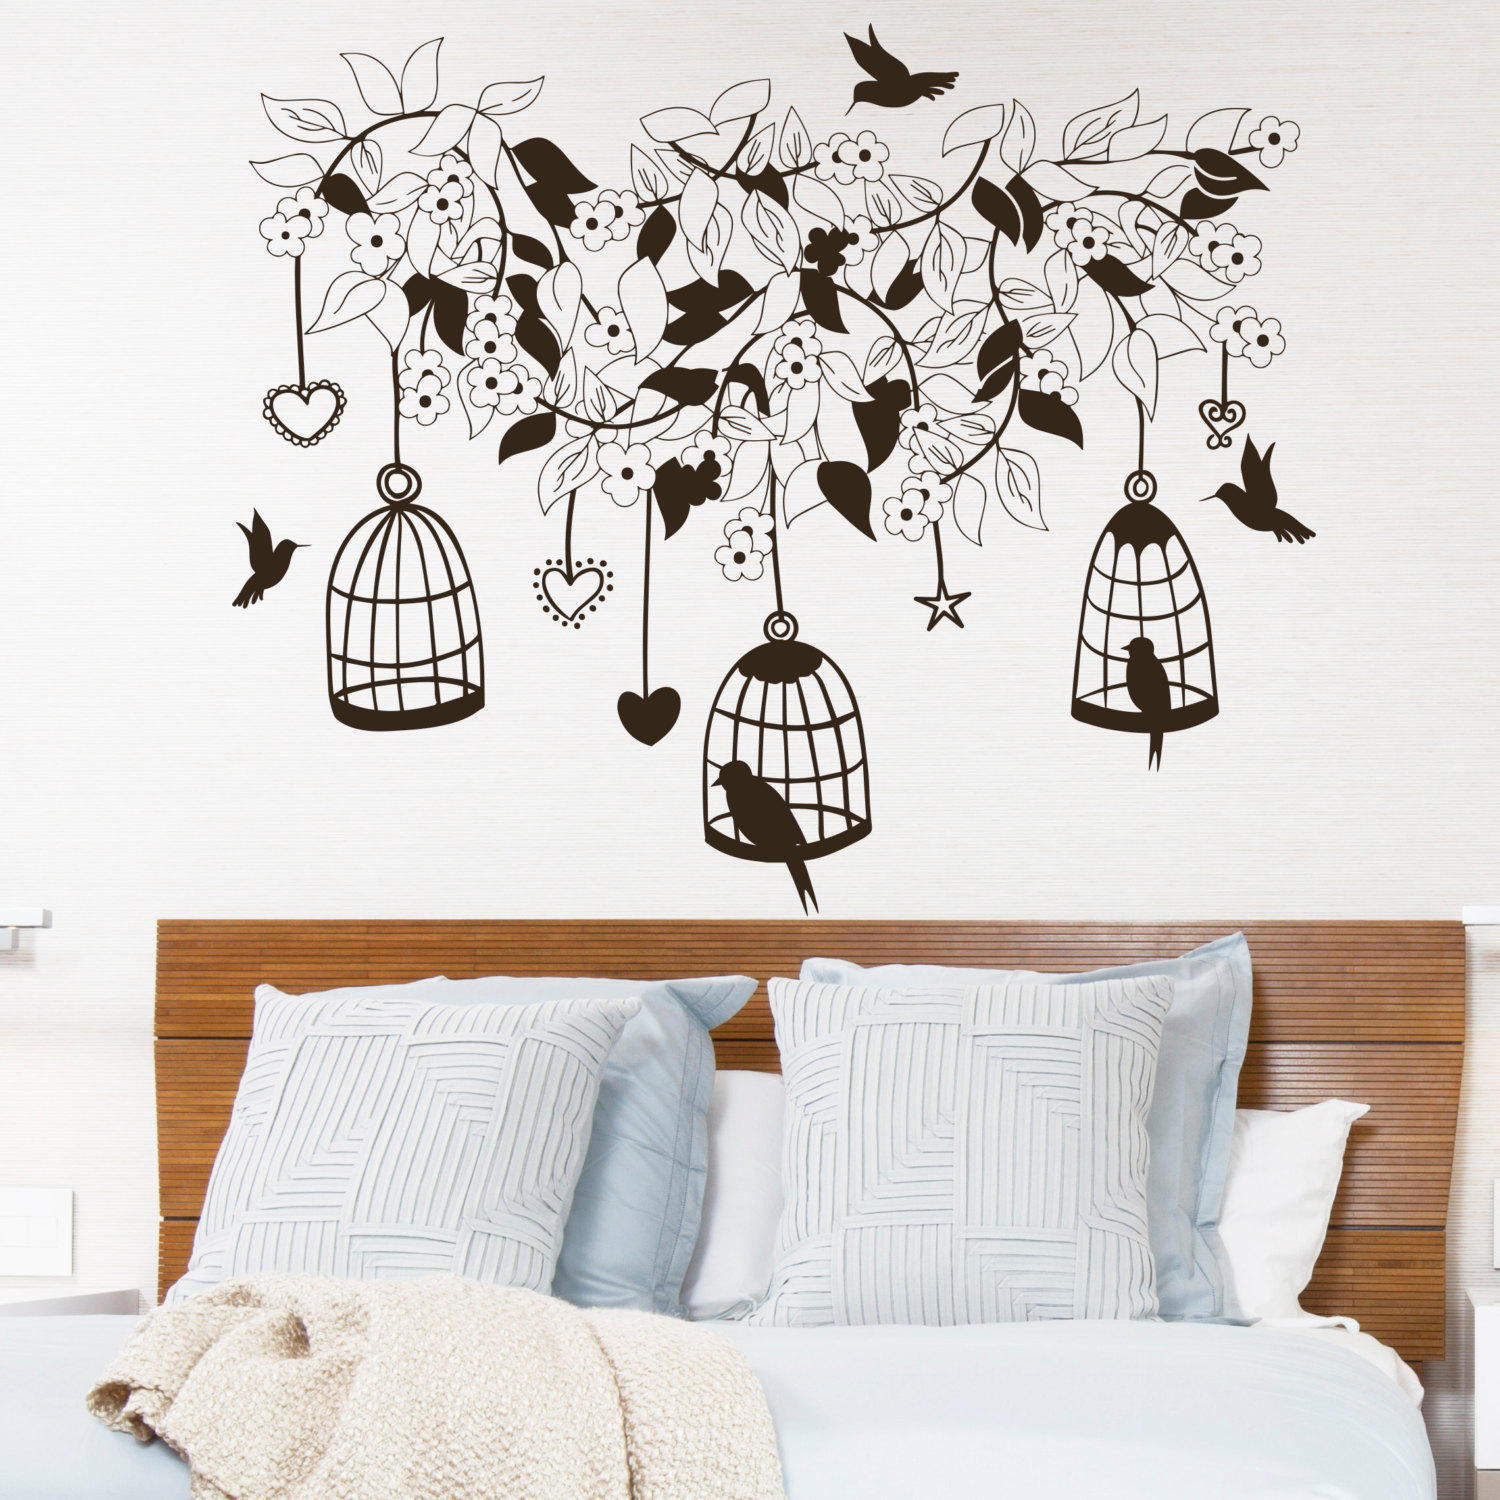 Wall Decal Flowers Tree Birds in Cage from DecalsfromDavid on